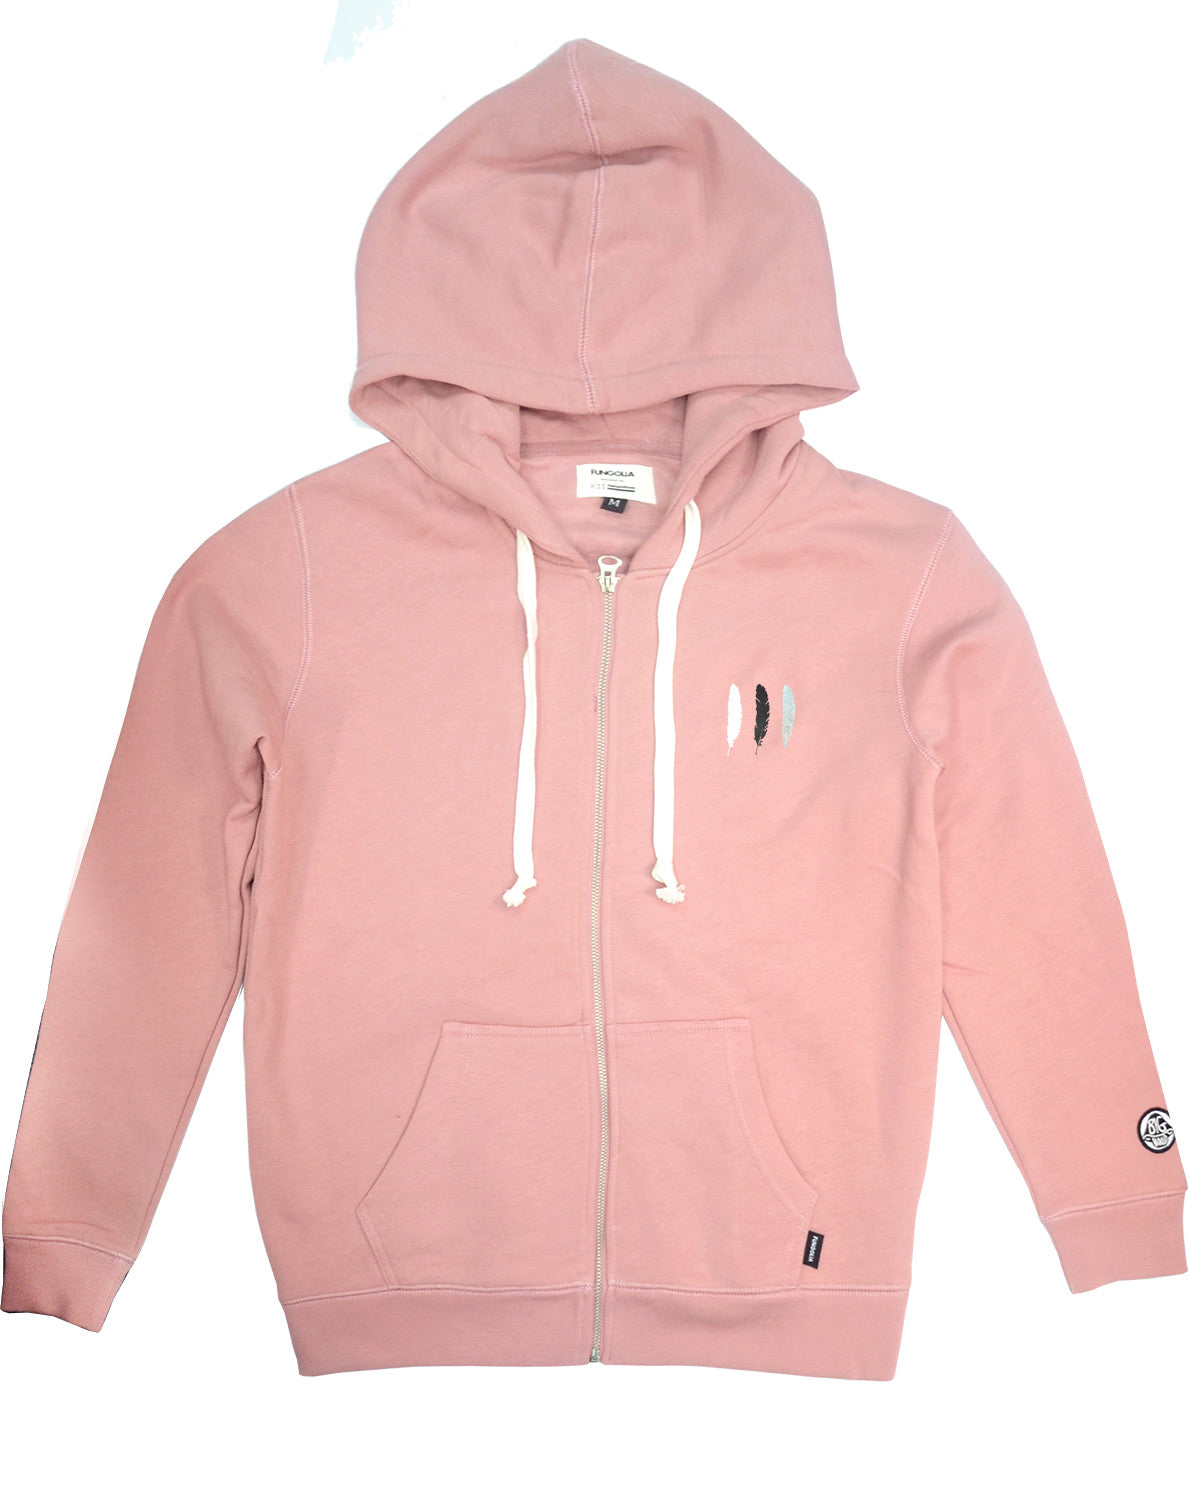 good out x cheap for discount shoes for cheap Fungolia Big Hood Fleece Zip Hoodie - WBF feathers (Dusty Pink)